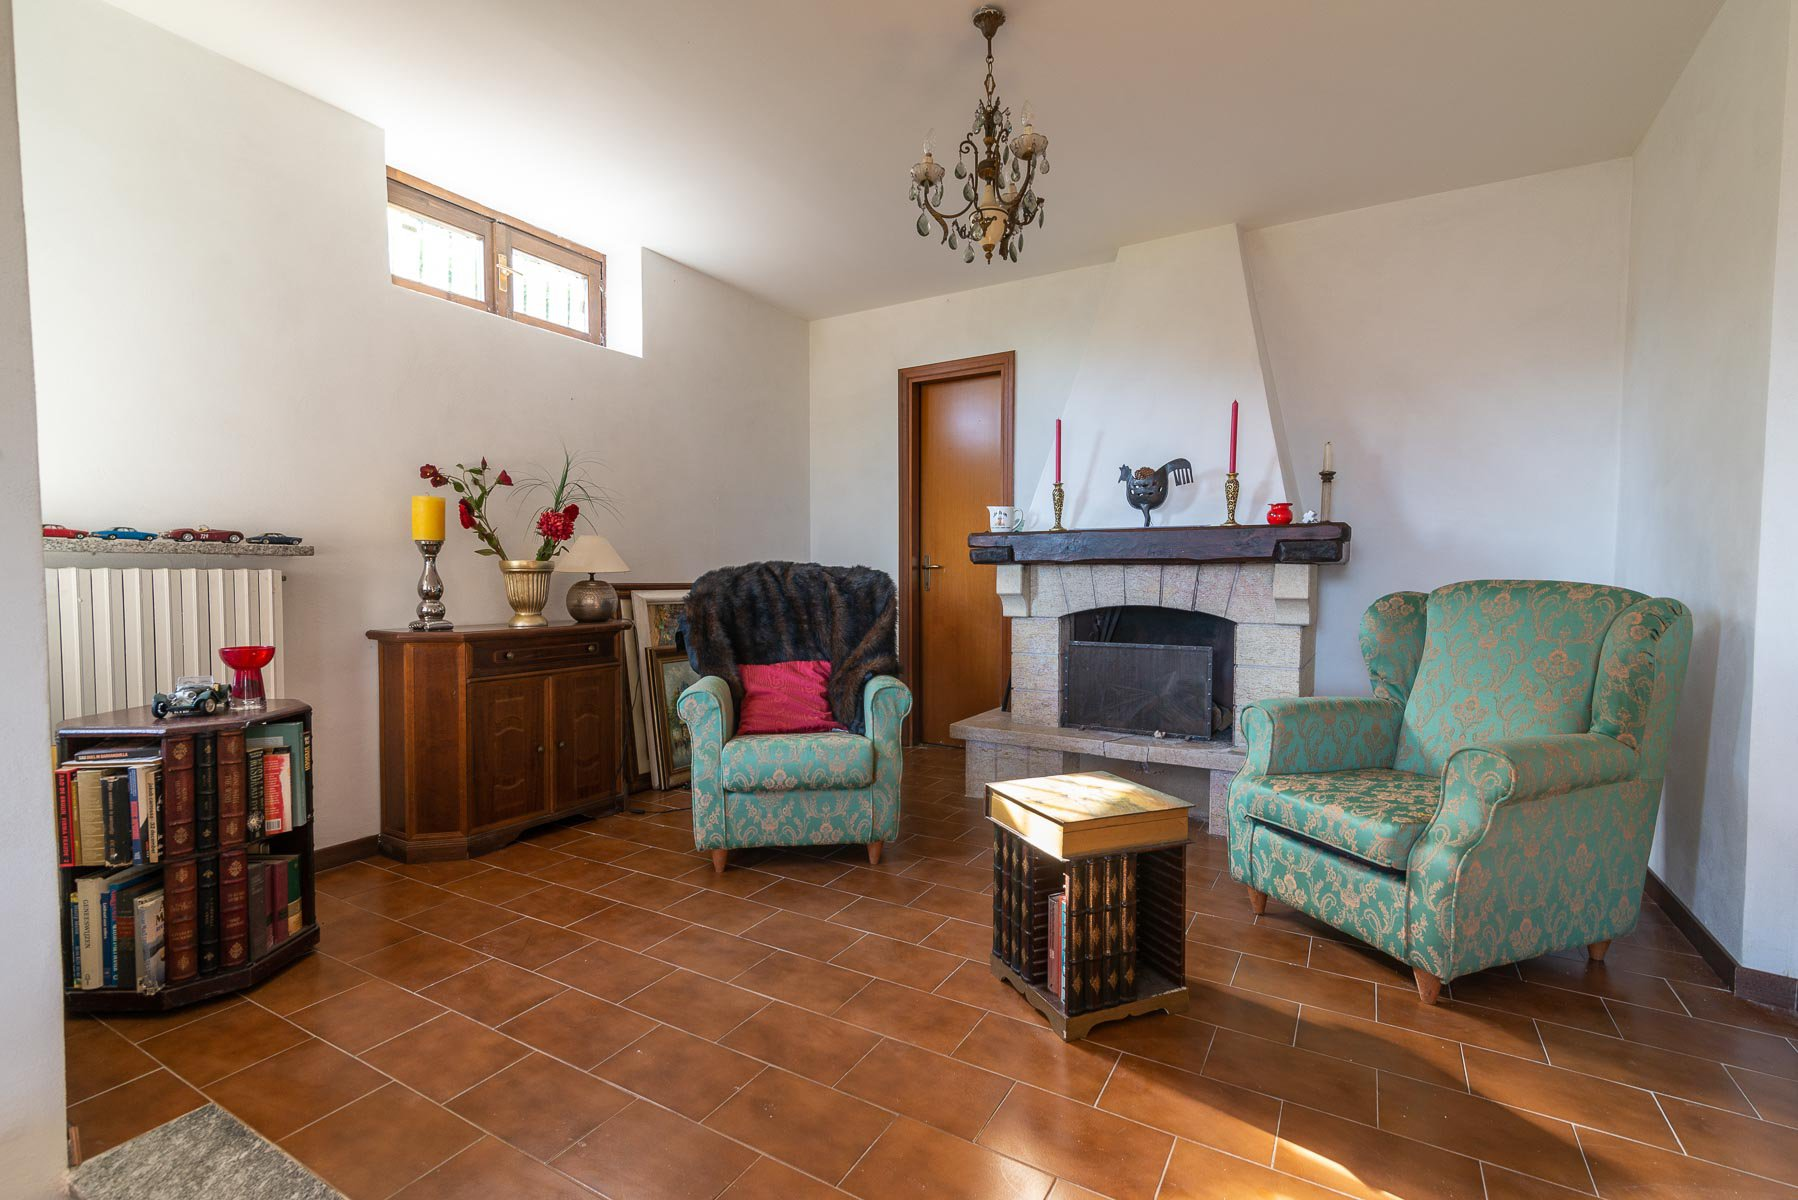 Villa for sale on the hill of Stresa with lake view- living room with fireplace